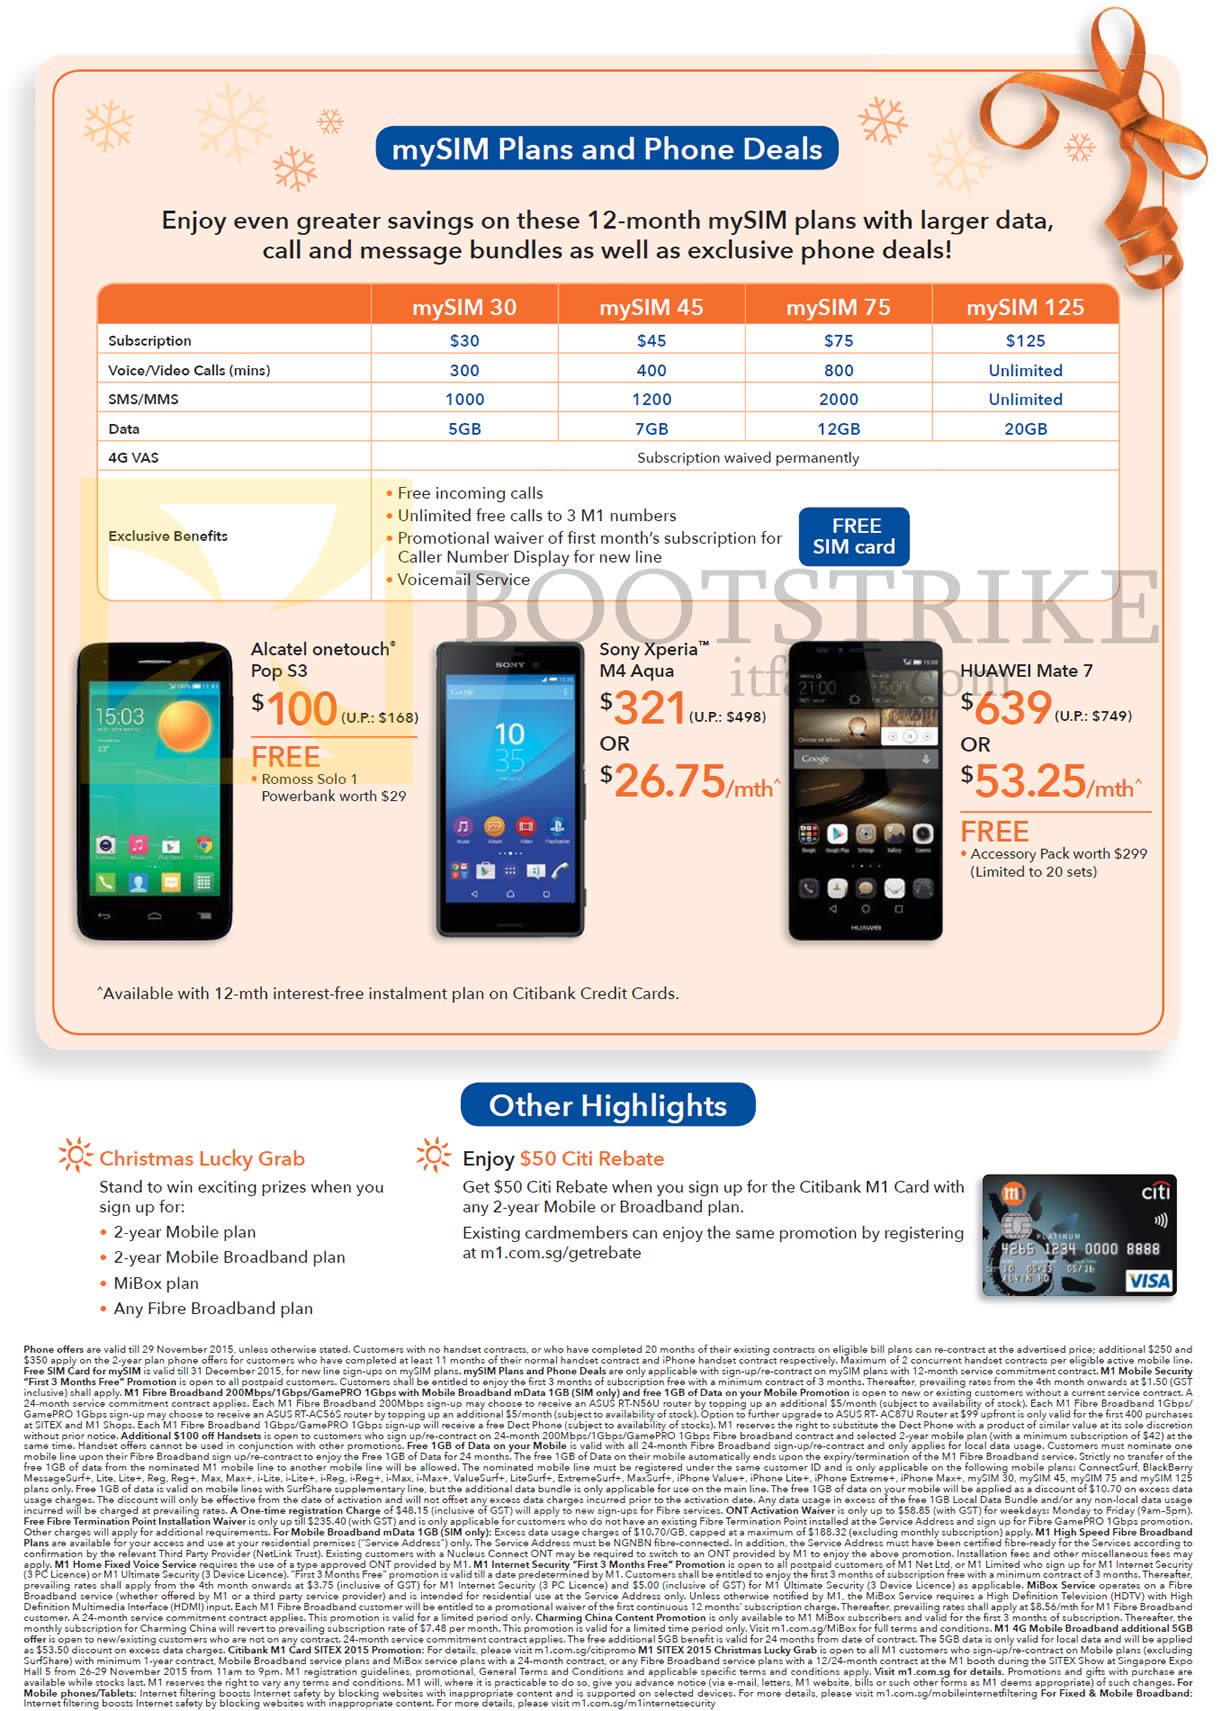 SITEX 2015 price list image brochure of M1 MySIM Plans, Alcatel Onetouch, Sony Xperia M4 Aqua, Huawei Mate 7, Christmas Lucky Grab, Citi Rebate